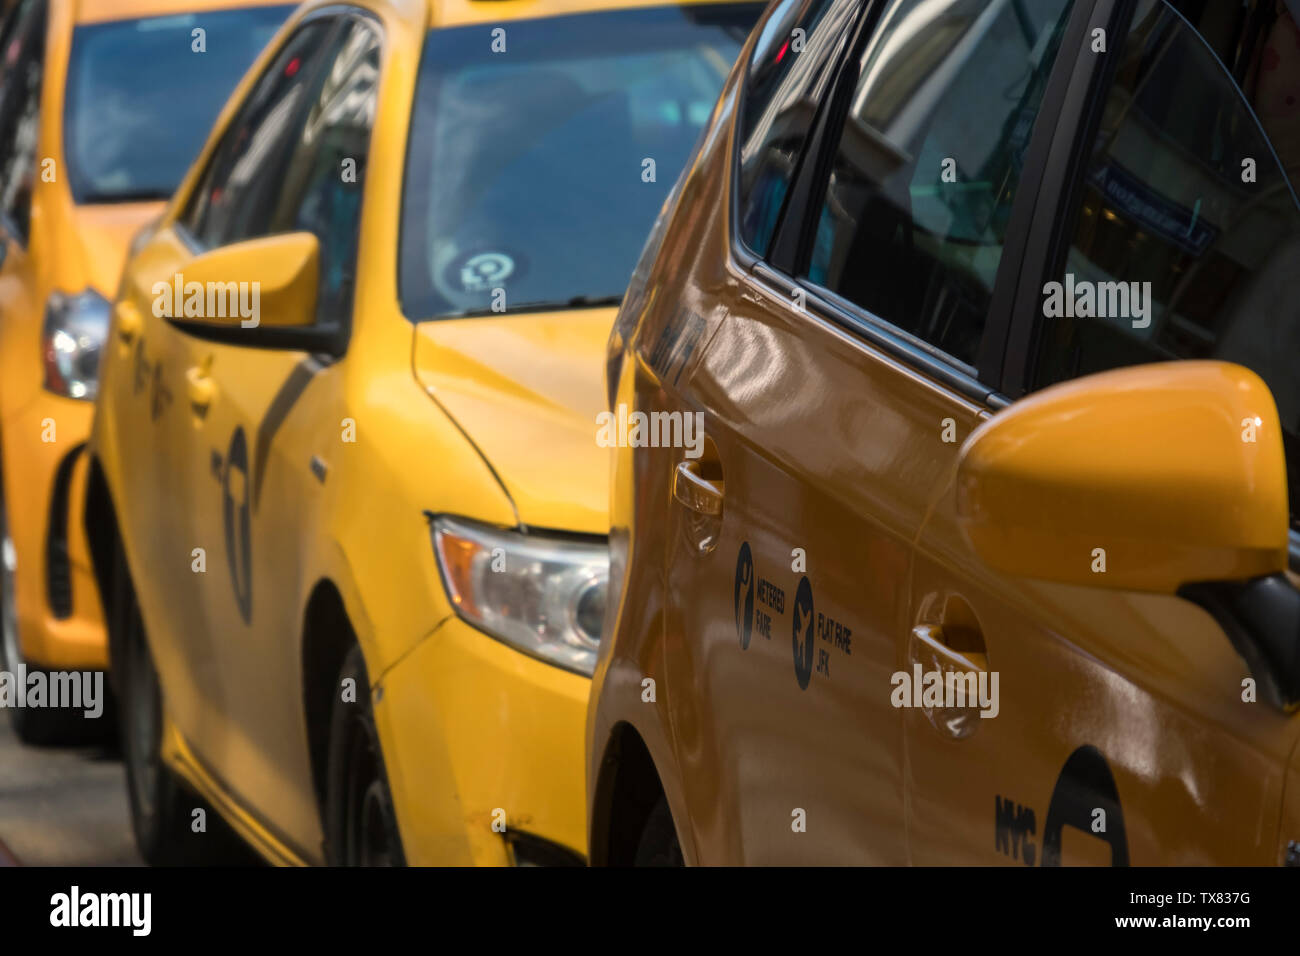 New York City Yellow Taxicabs, Manhattan, New York, USA Stock Photo